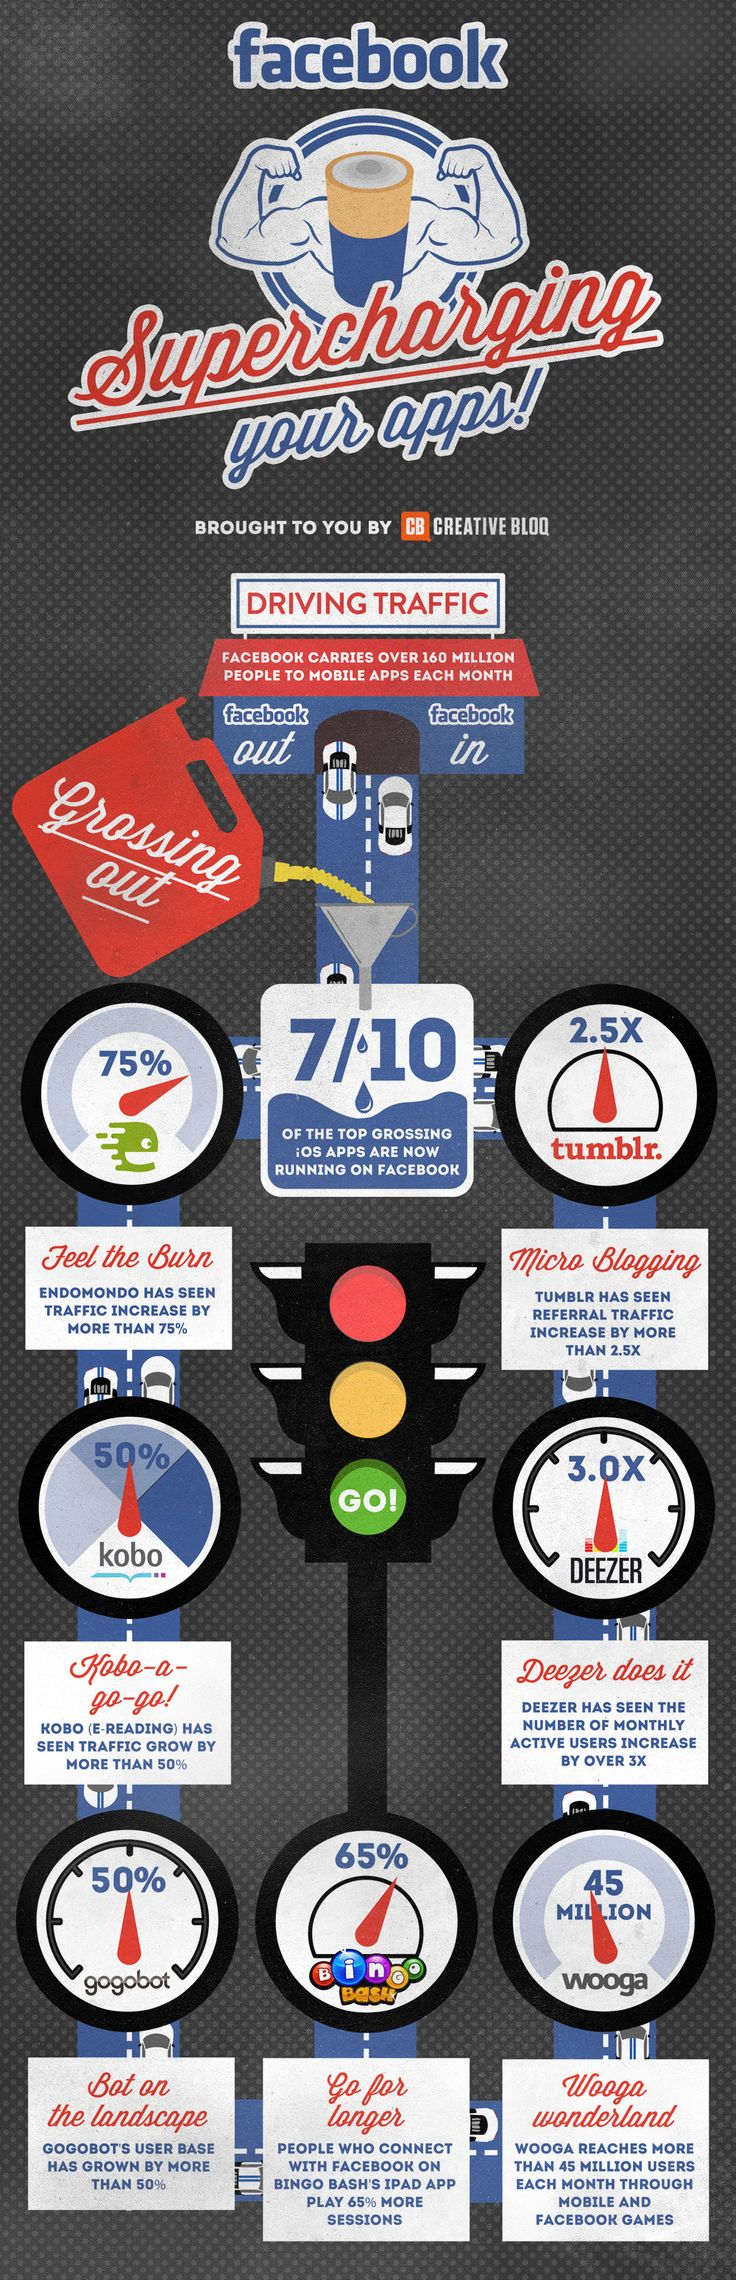 This inforgraphic is eye catching because the whole thing is on a road and your eyes start following the moving cars. It is themed and I think when an infographic sticks to a creative theme it ends up speaking to me more.